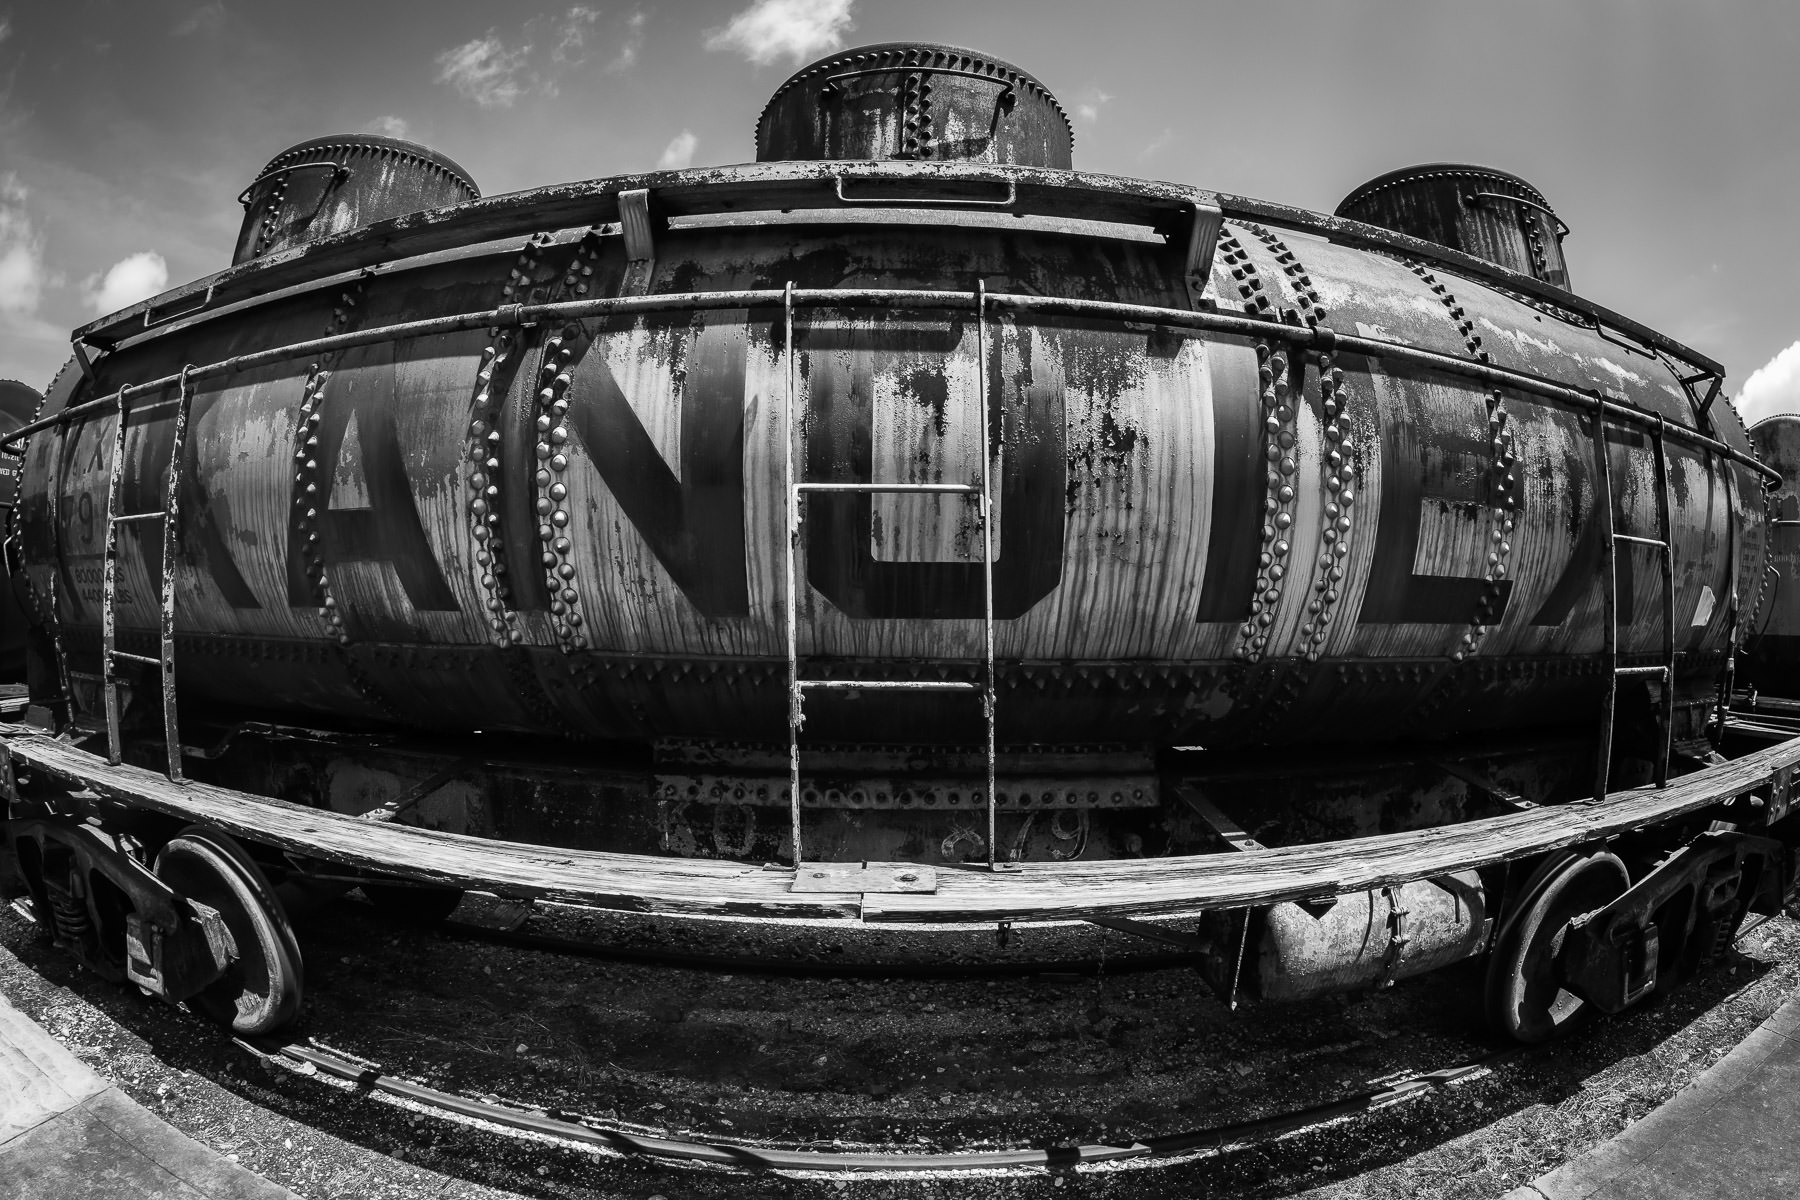 A tank car from the defunct Kanotex Refining Company, now on display at the Galveston Railroad Museum, Texas.